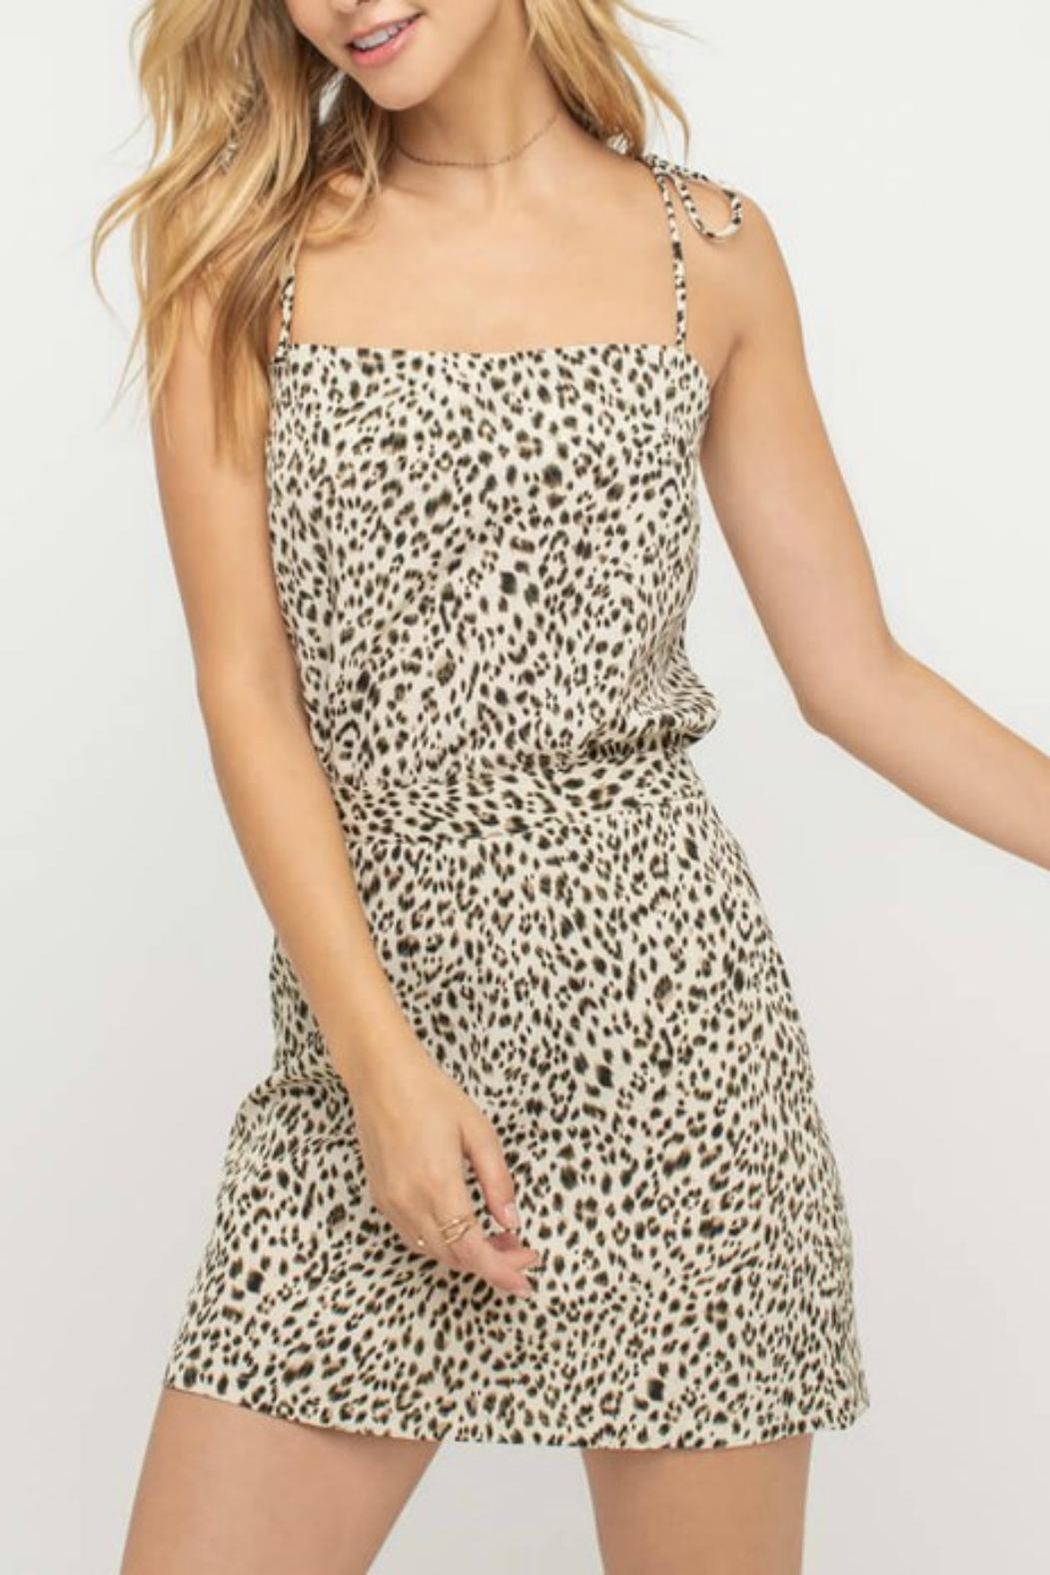 Pretty Little Things Tailored Leopard Skirt - Side Cropped Image